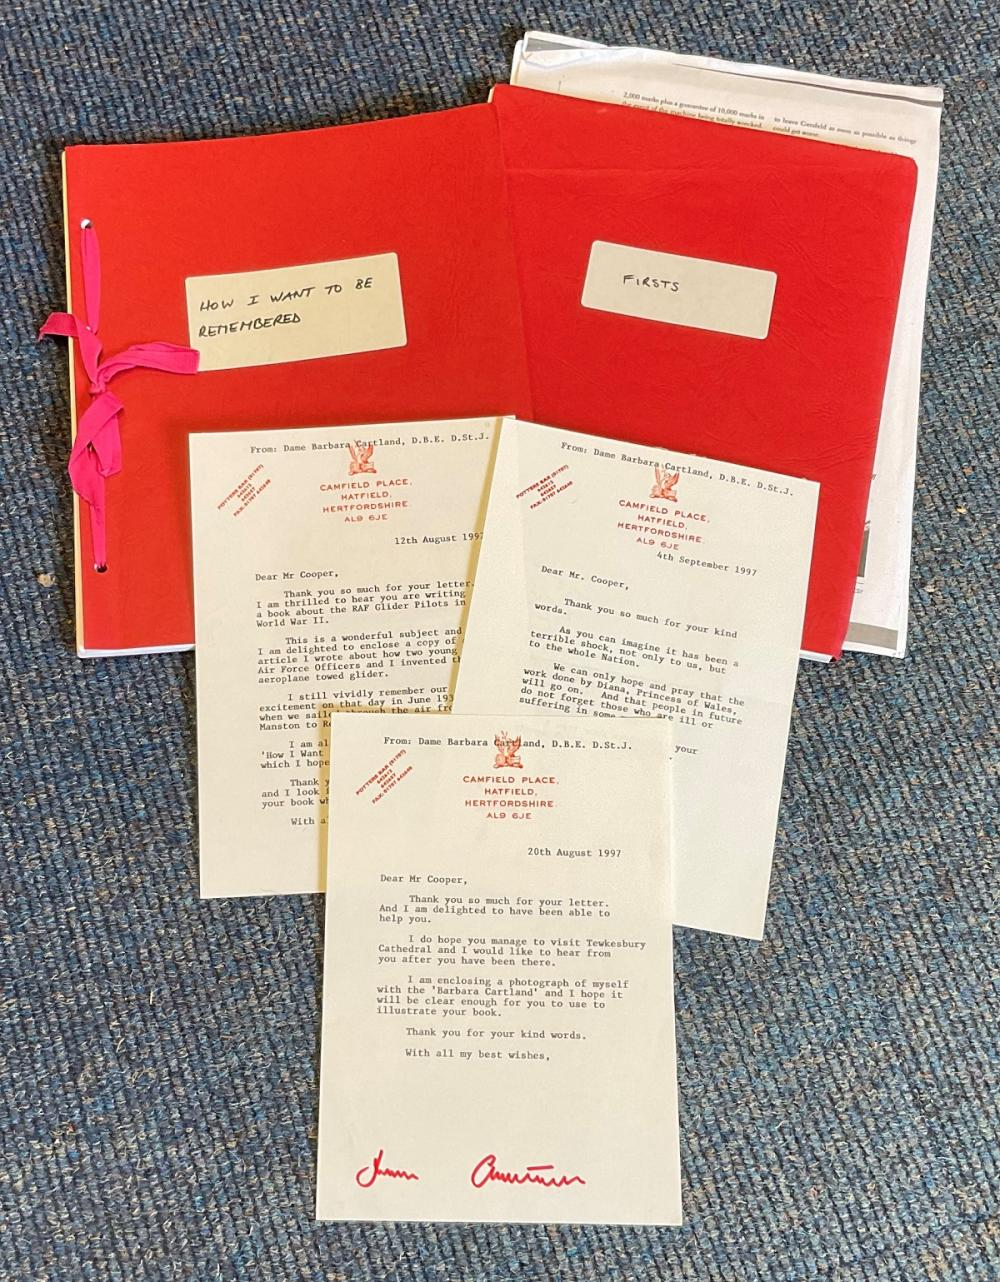 Barbara Cartland collection includes 3 TLS to RAF historian Mike Cooper and two typed original